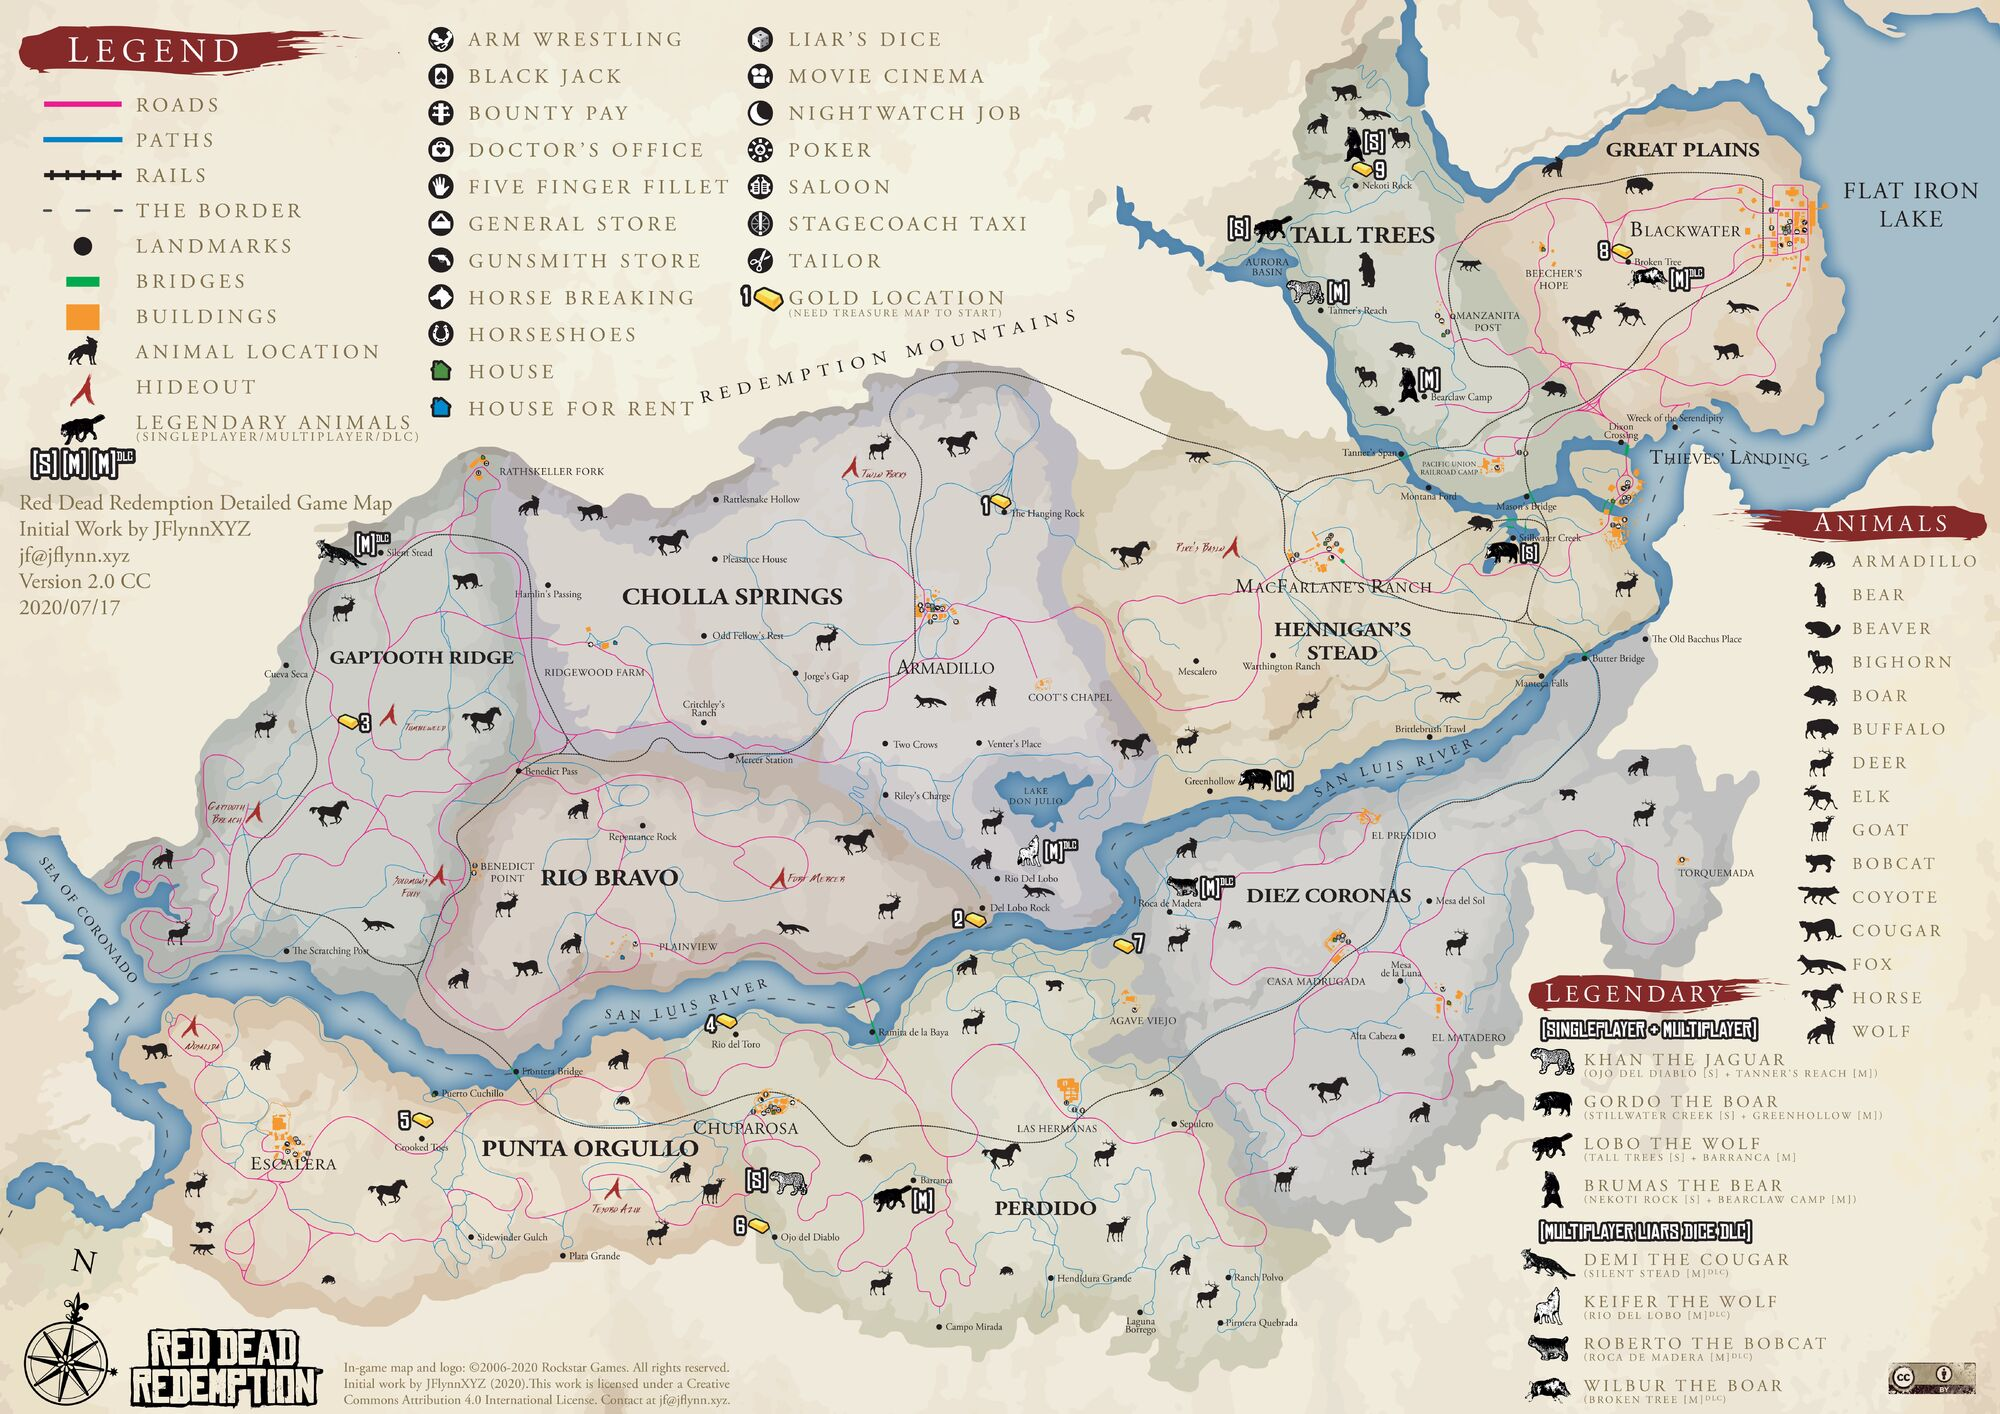 Red Dead Redemption Us Map.Locations In Redemption Red Dead Wiki Fandom Powered By Wikia